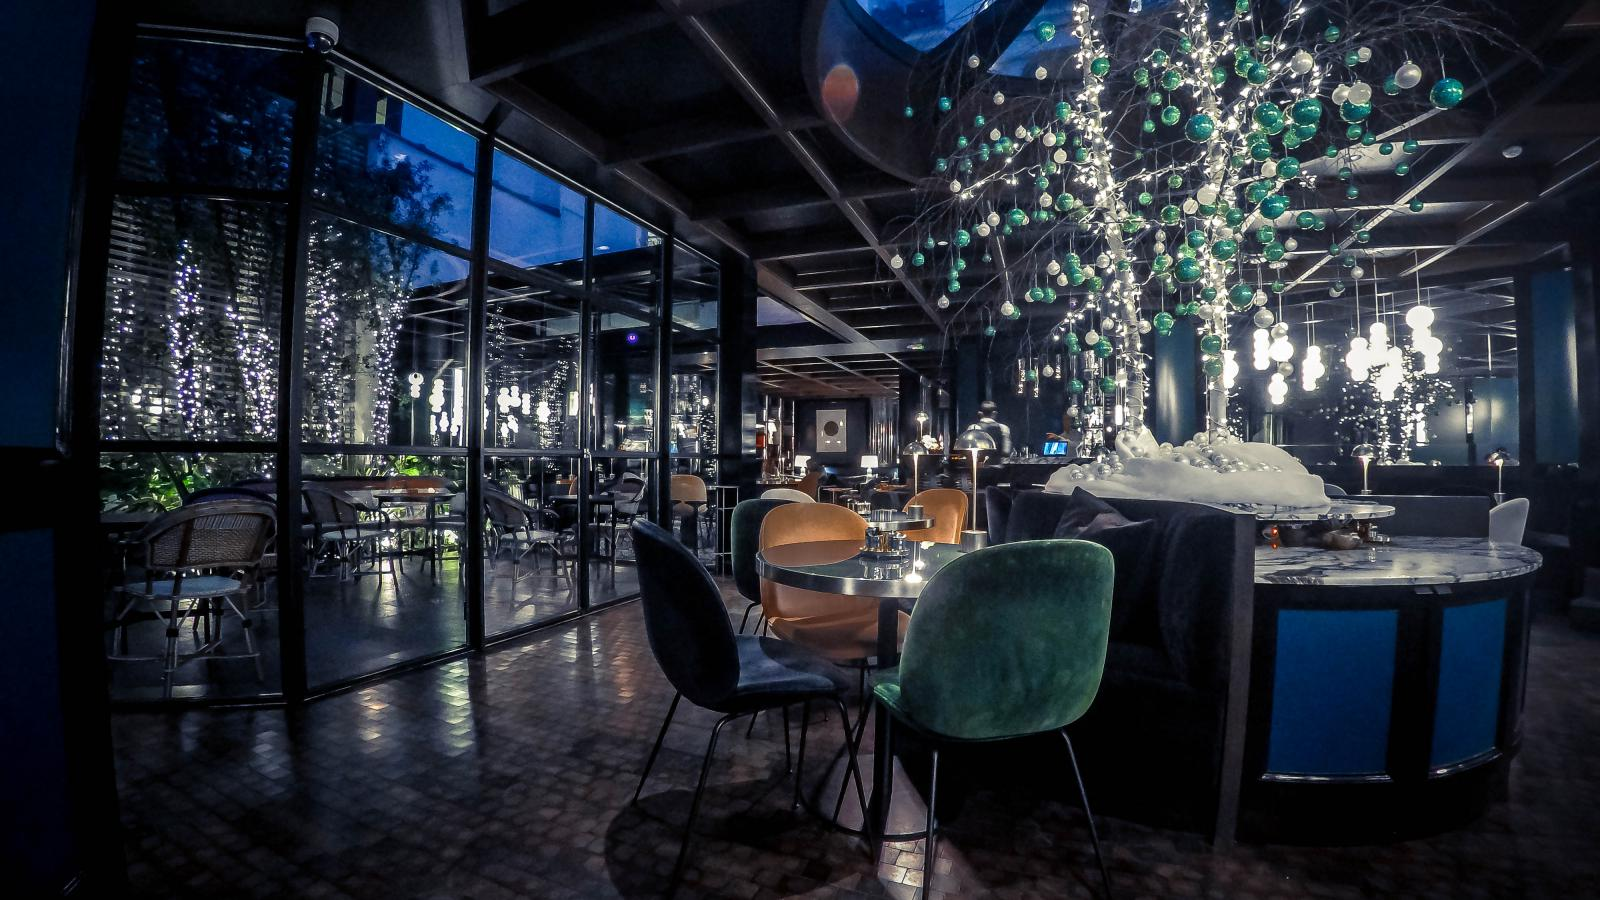 Gourmandise and tradition for a Christmas at the Roch Hotel & Spa